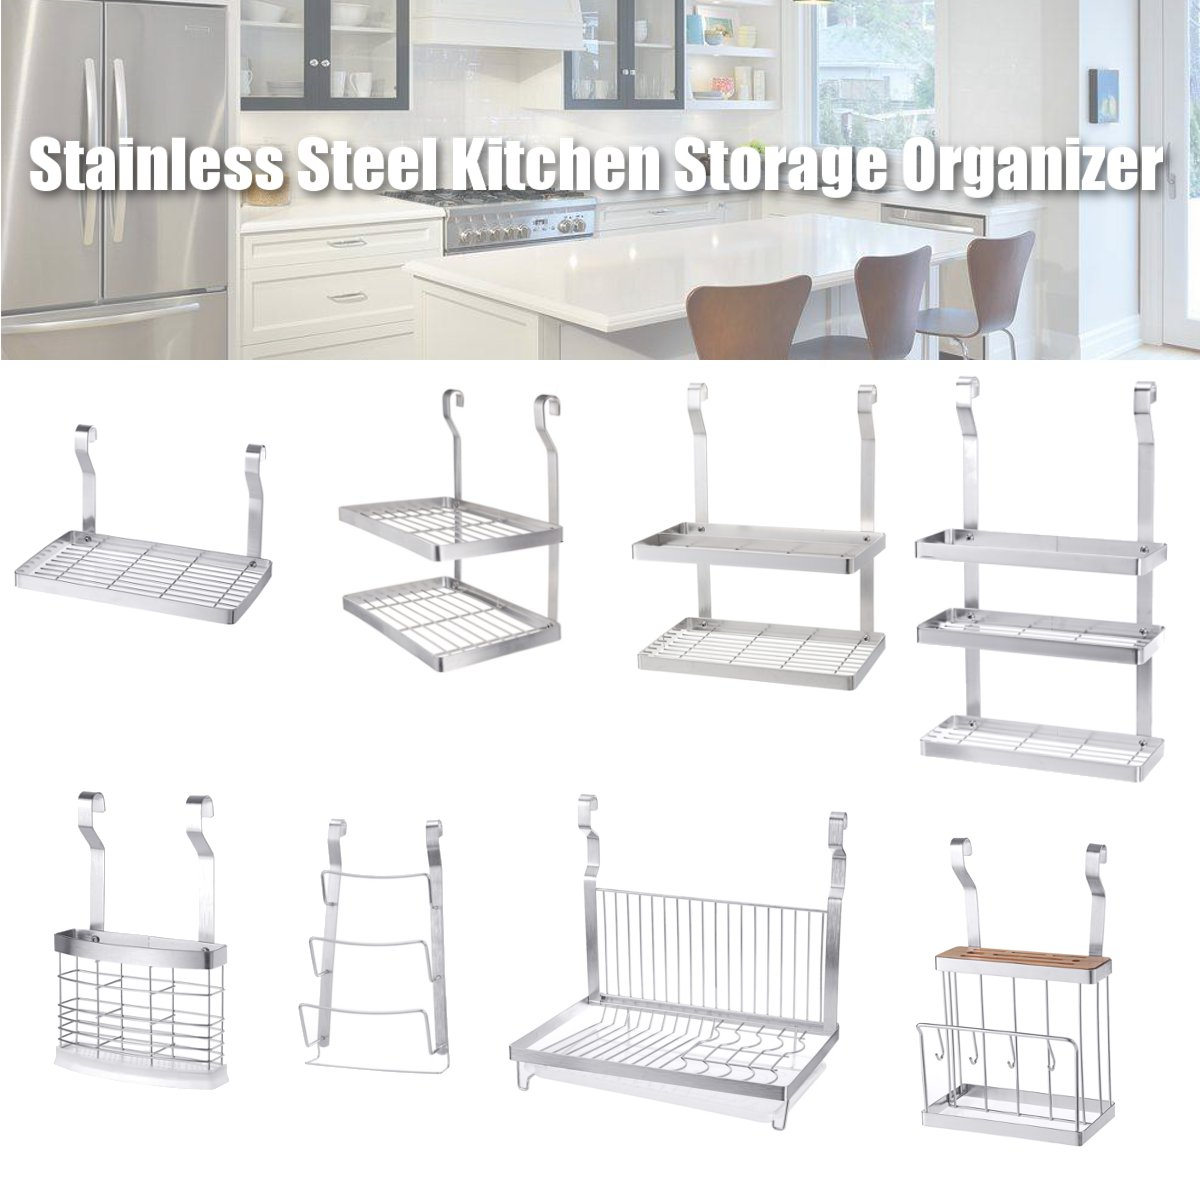 8 Types Stainless Steel Kitchen Organizer Multifunction Dish Drying Rack Wall Hanging Storage Holder Tableware Shelf Drainer Racks Holders Aliexpress